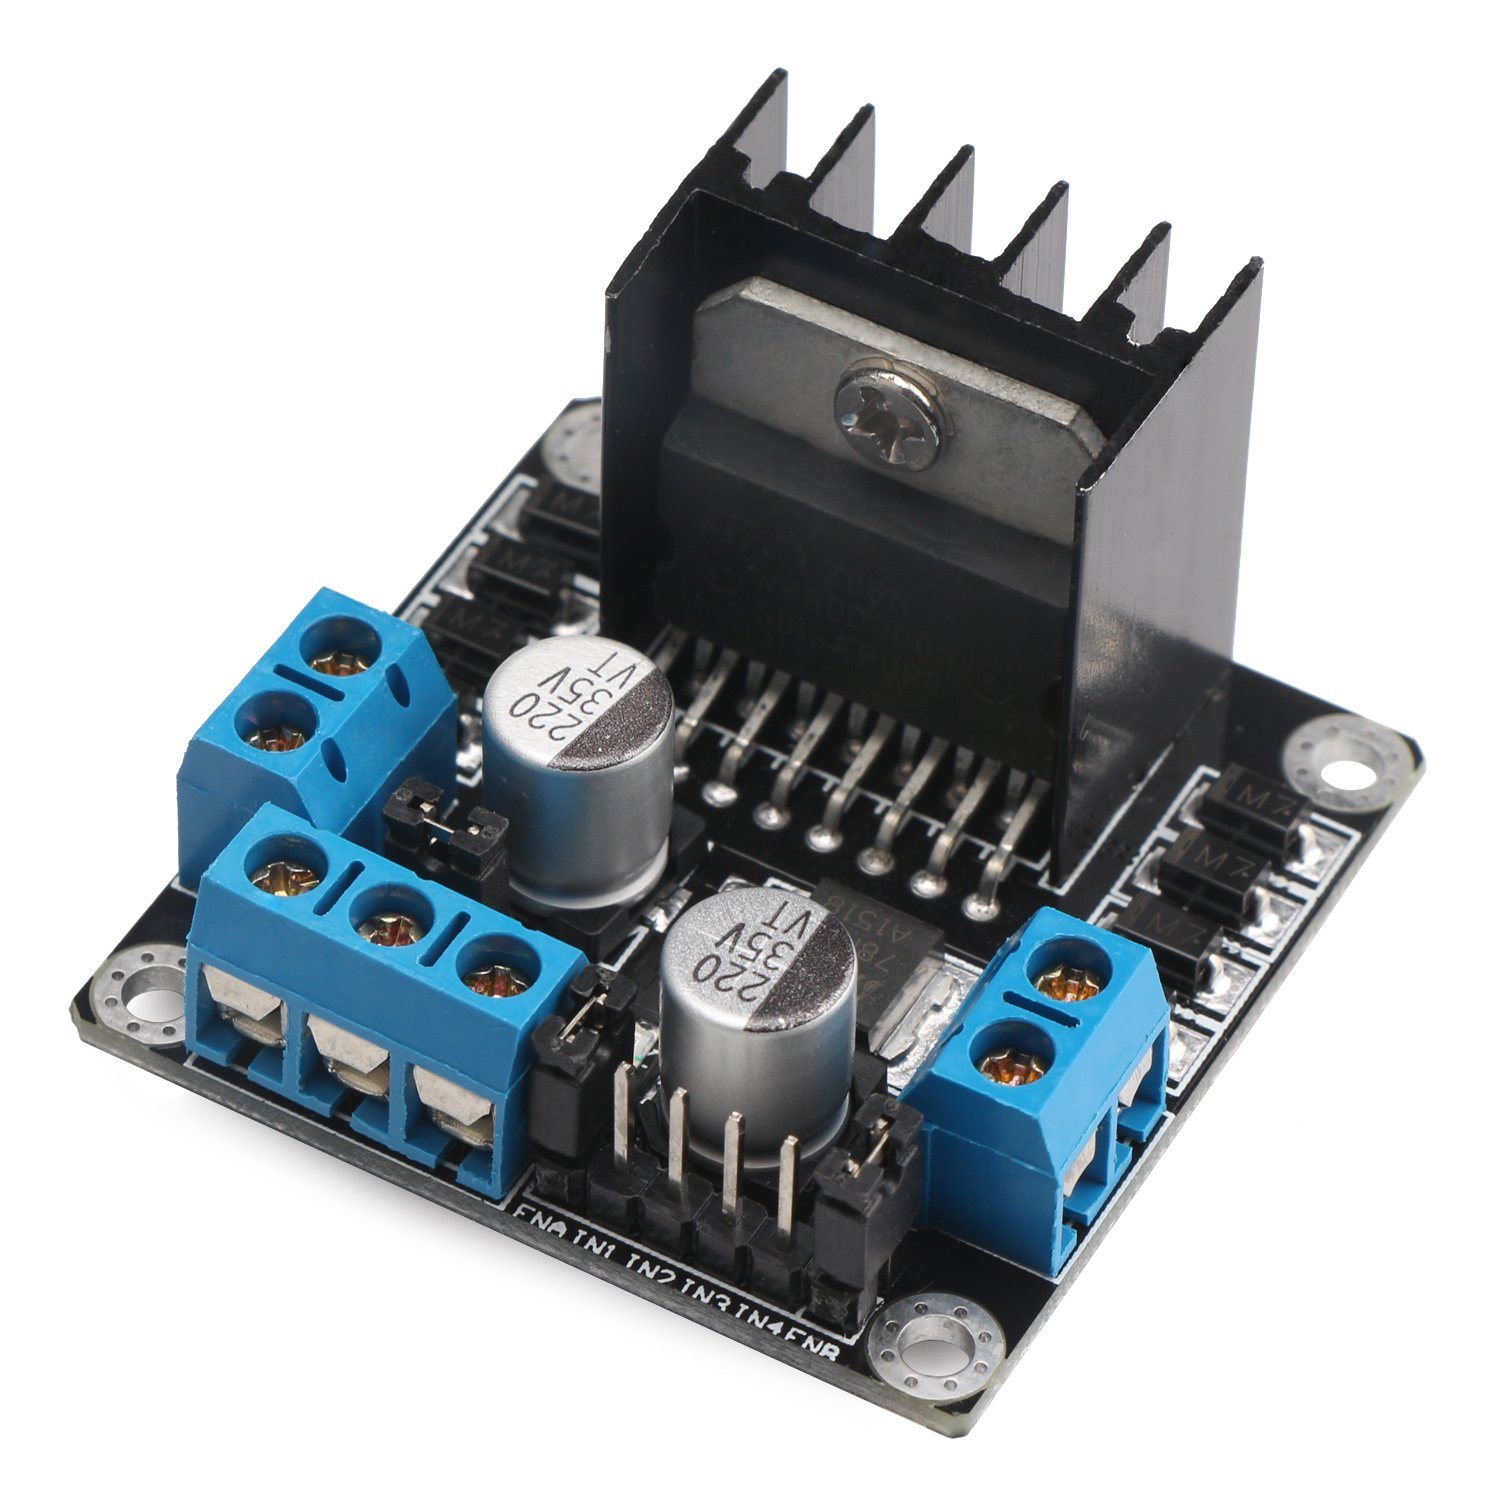 L298n H Bridge Motor Controller Drok Driver Board Dc Diagram Together With L298 Circuit Pin On Dual Robot Stepper Regulator And Drives Module For Arduino Smart Car Power